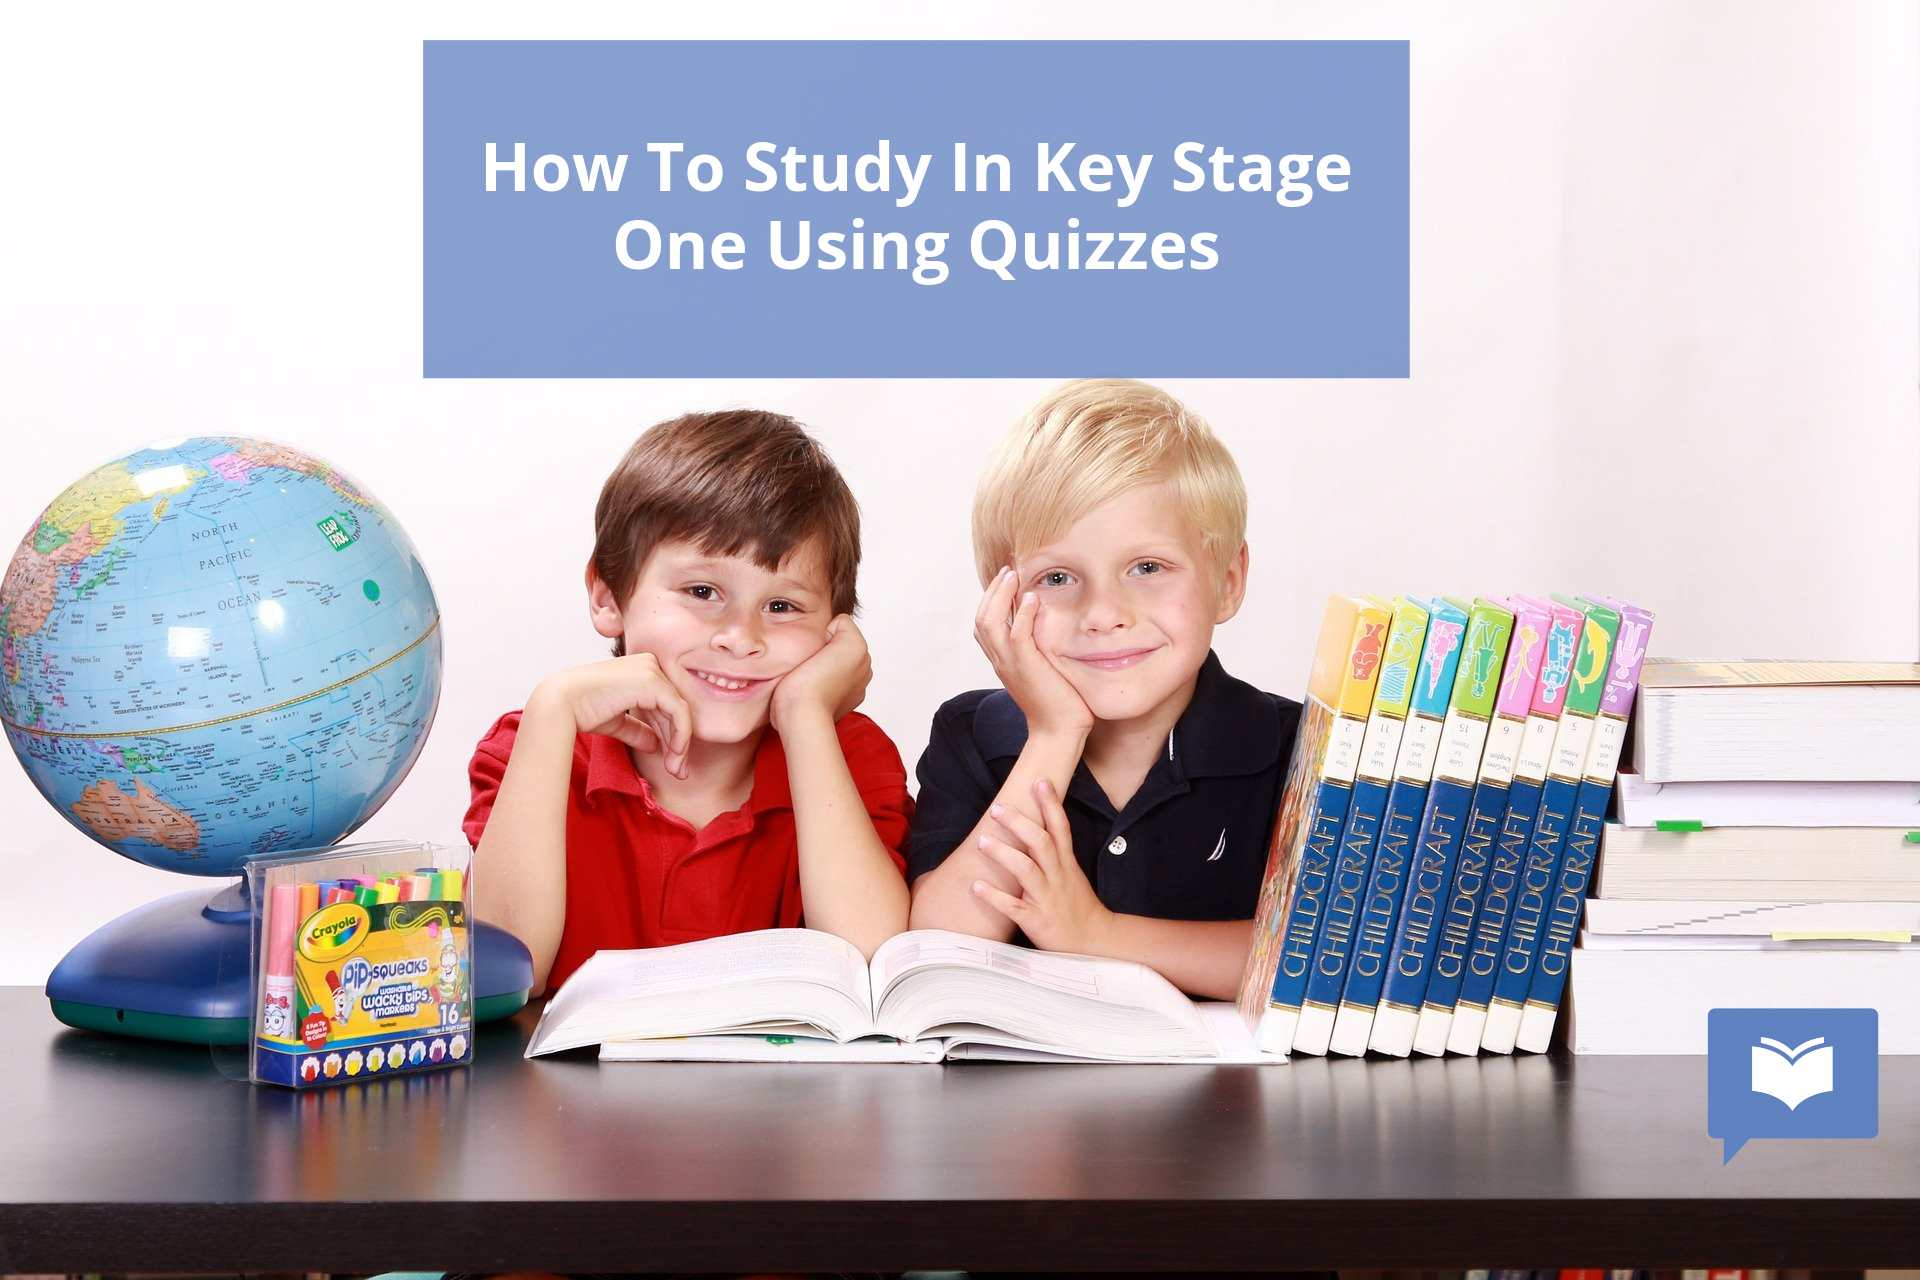 How To Study In Key Stage One Using Quizzes